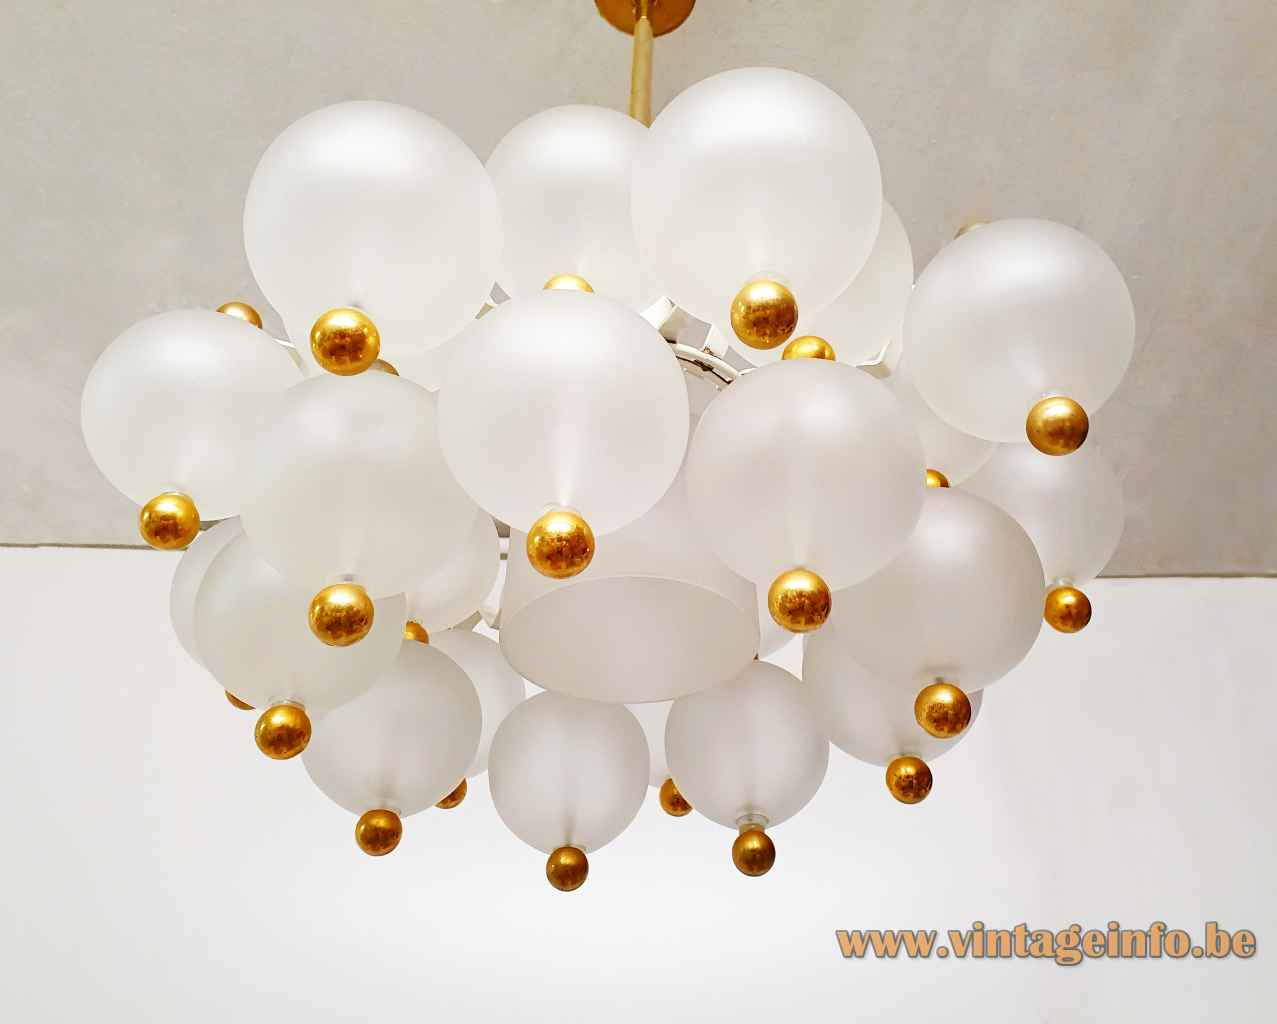 Kinkeldey frosted globes pendant lamp round 27 glass spheres lampshade brass ball nuts 1970s Germany chandelier